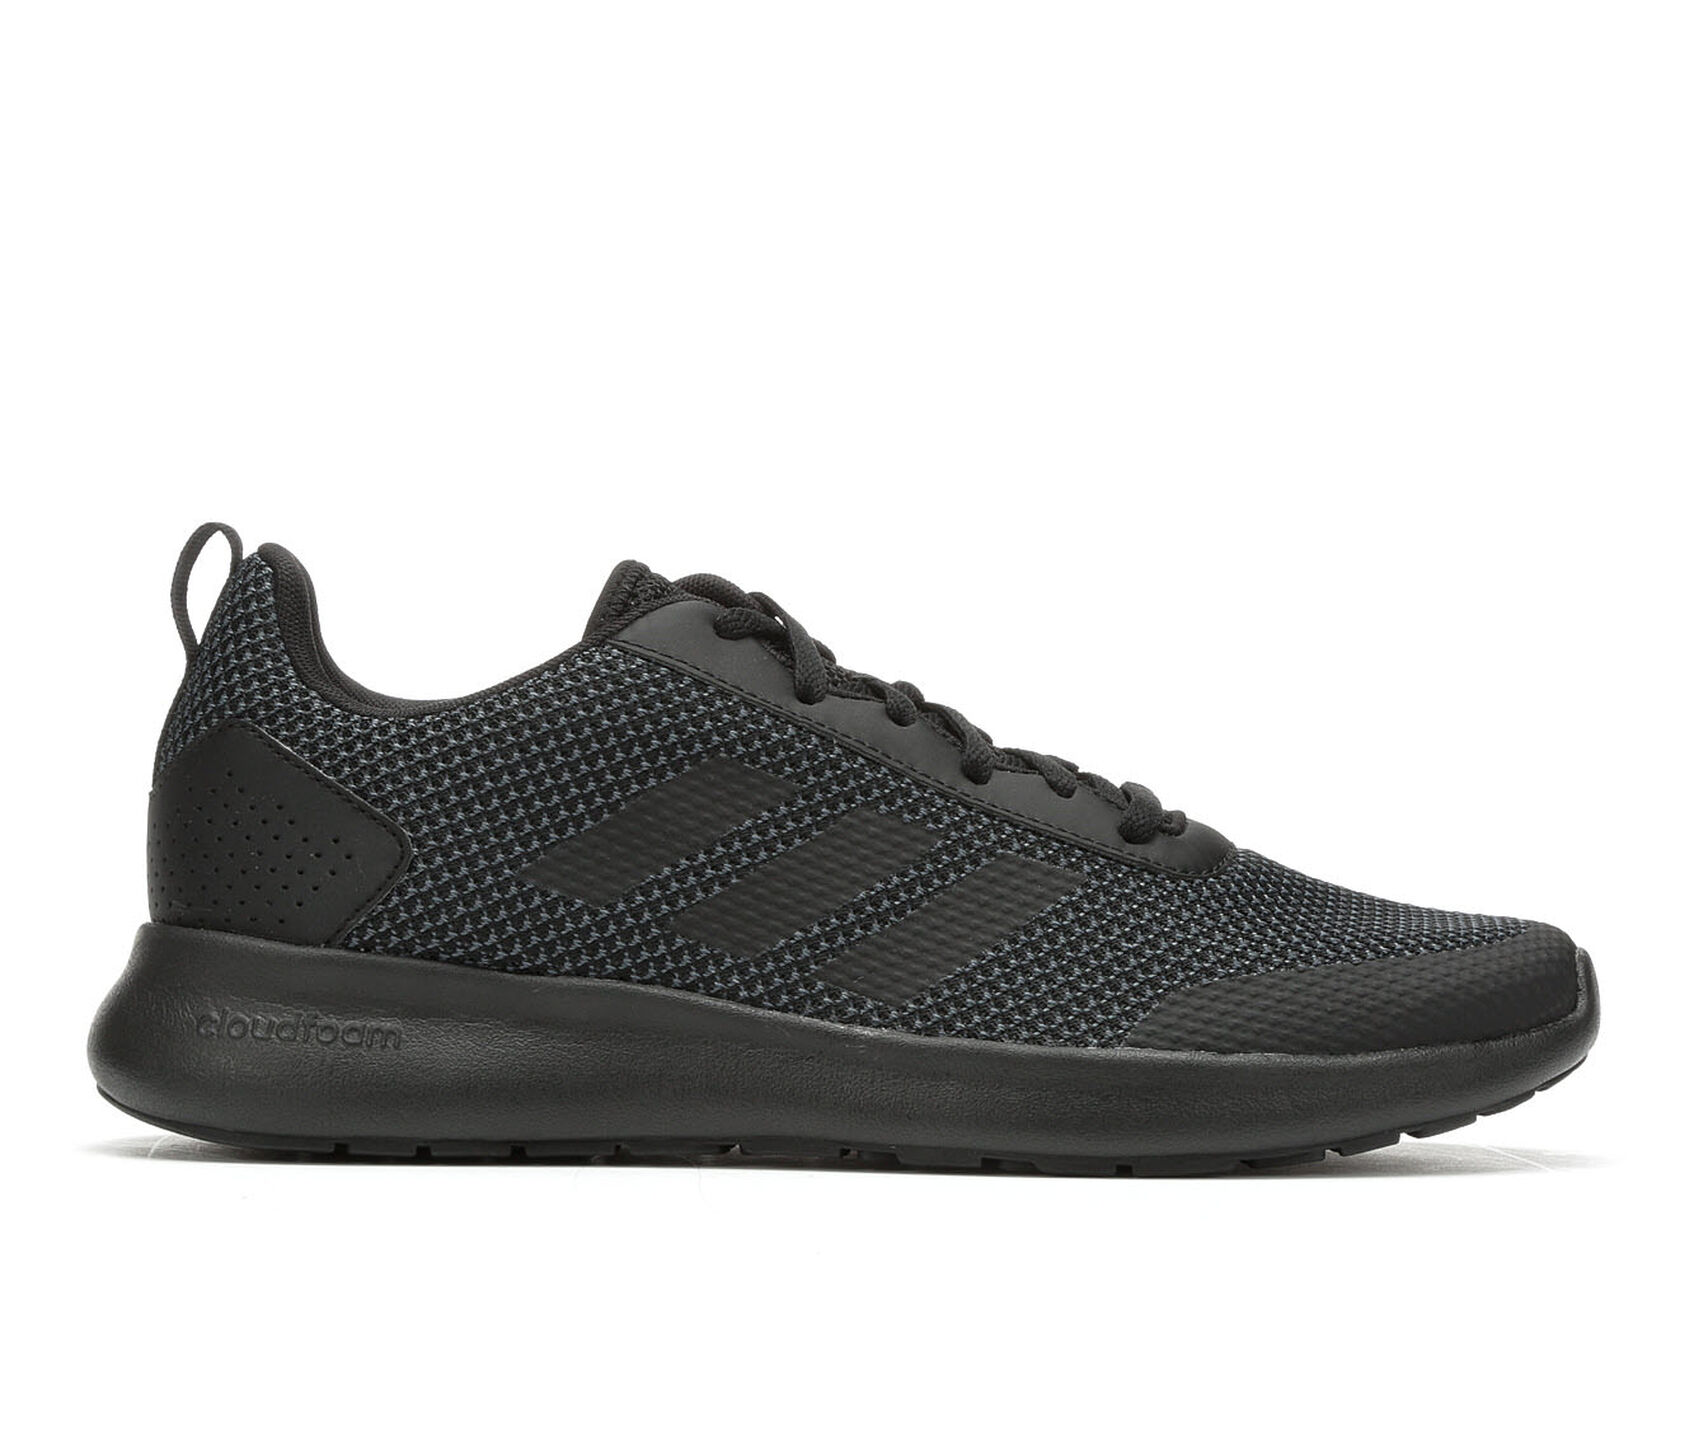 ... Adidas Cloudfoam Element Race Running Shoes. Previous 0b78fbac7